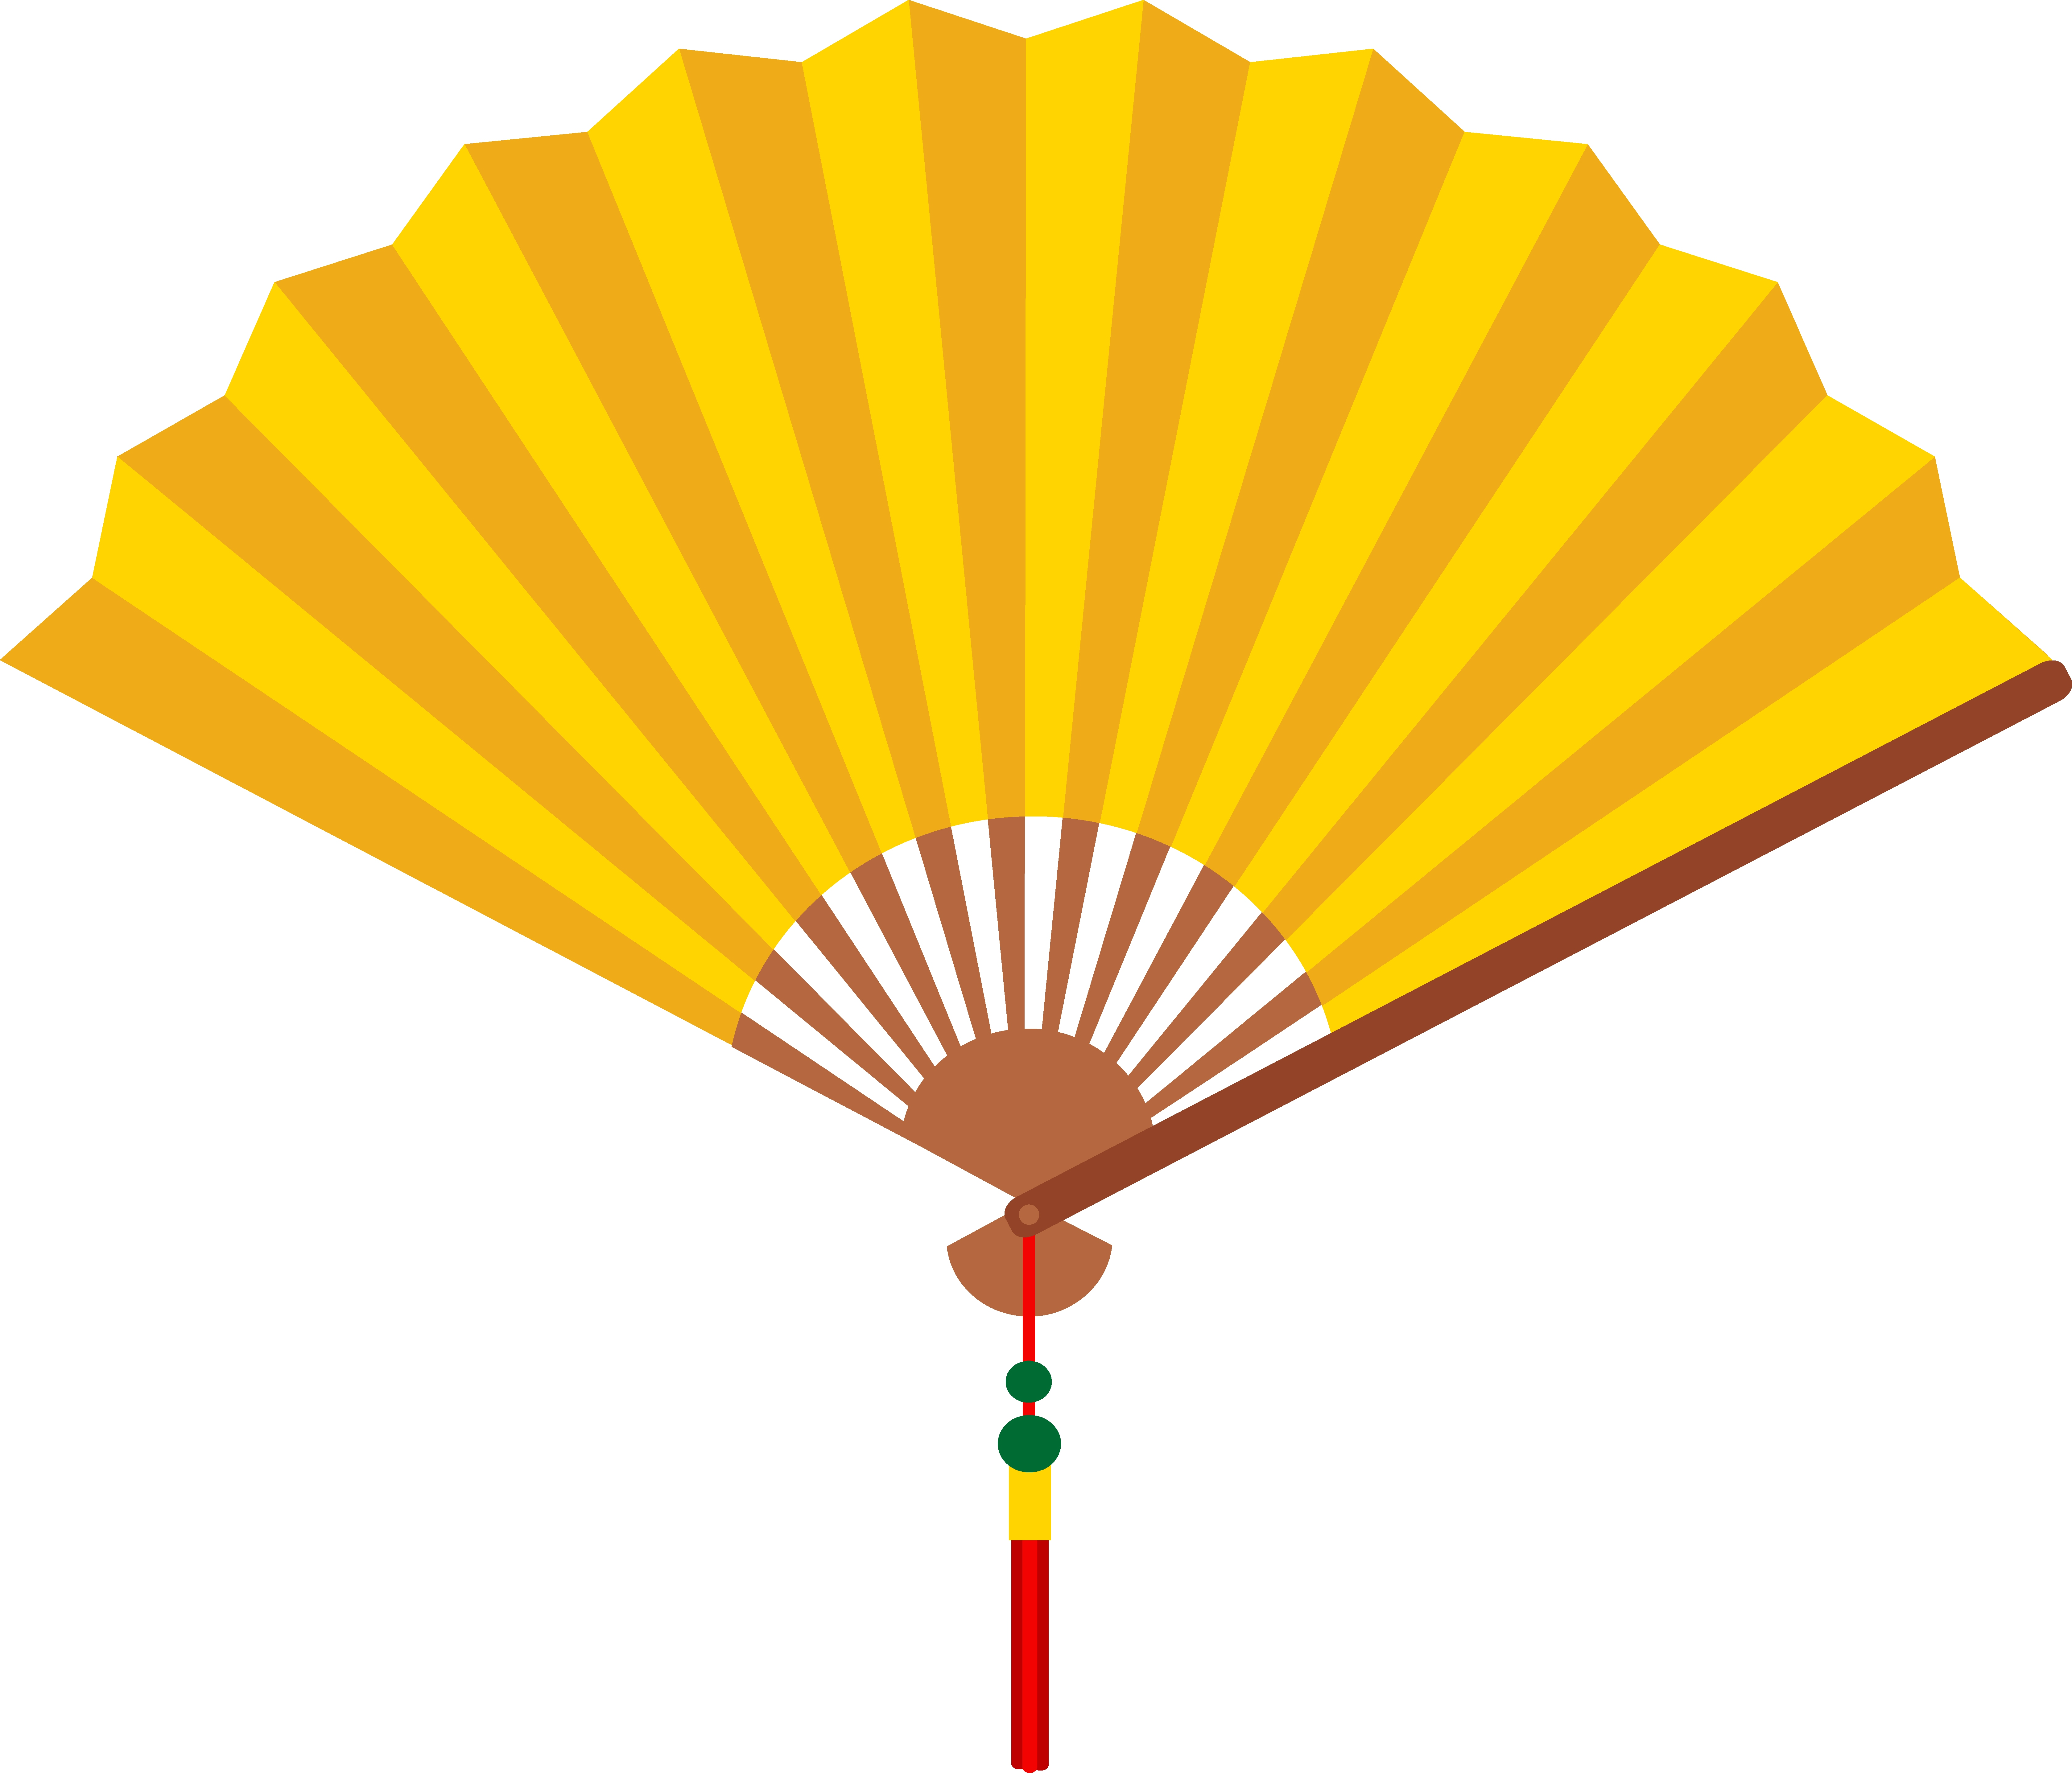 Japanese Fan Clipart at GetDrawings.com | Free for personal use ...